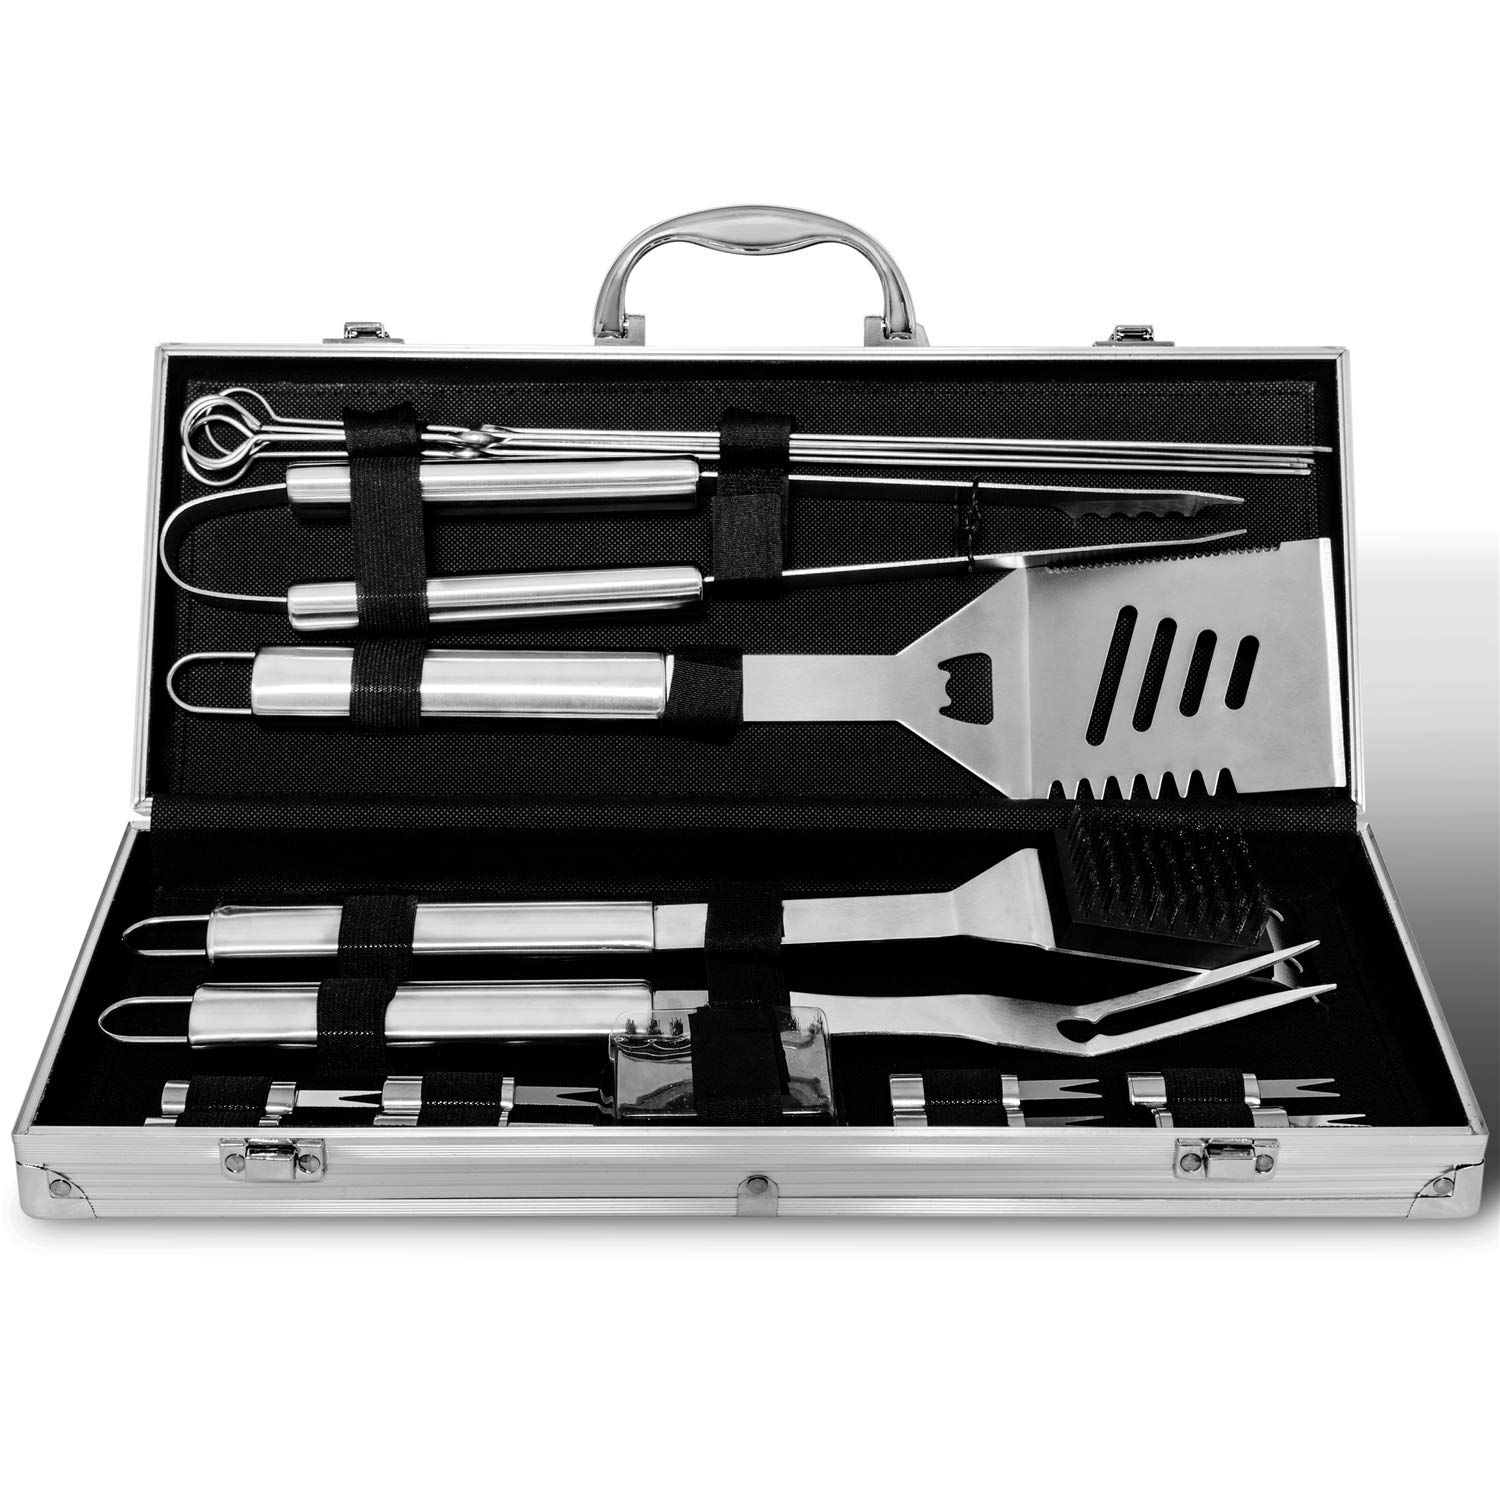 18 pieces stainless steel bbq grill tool set